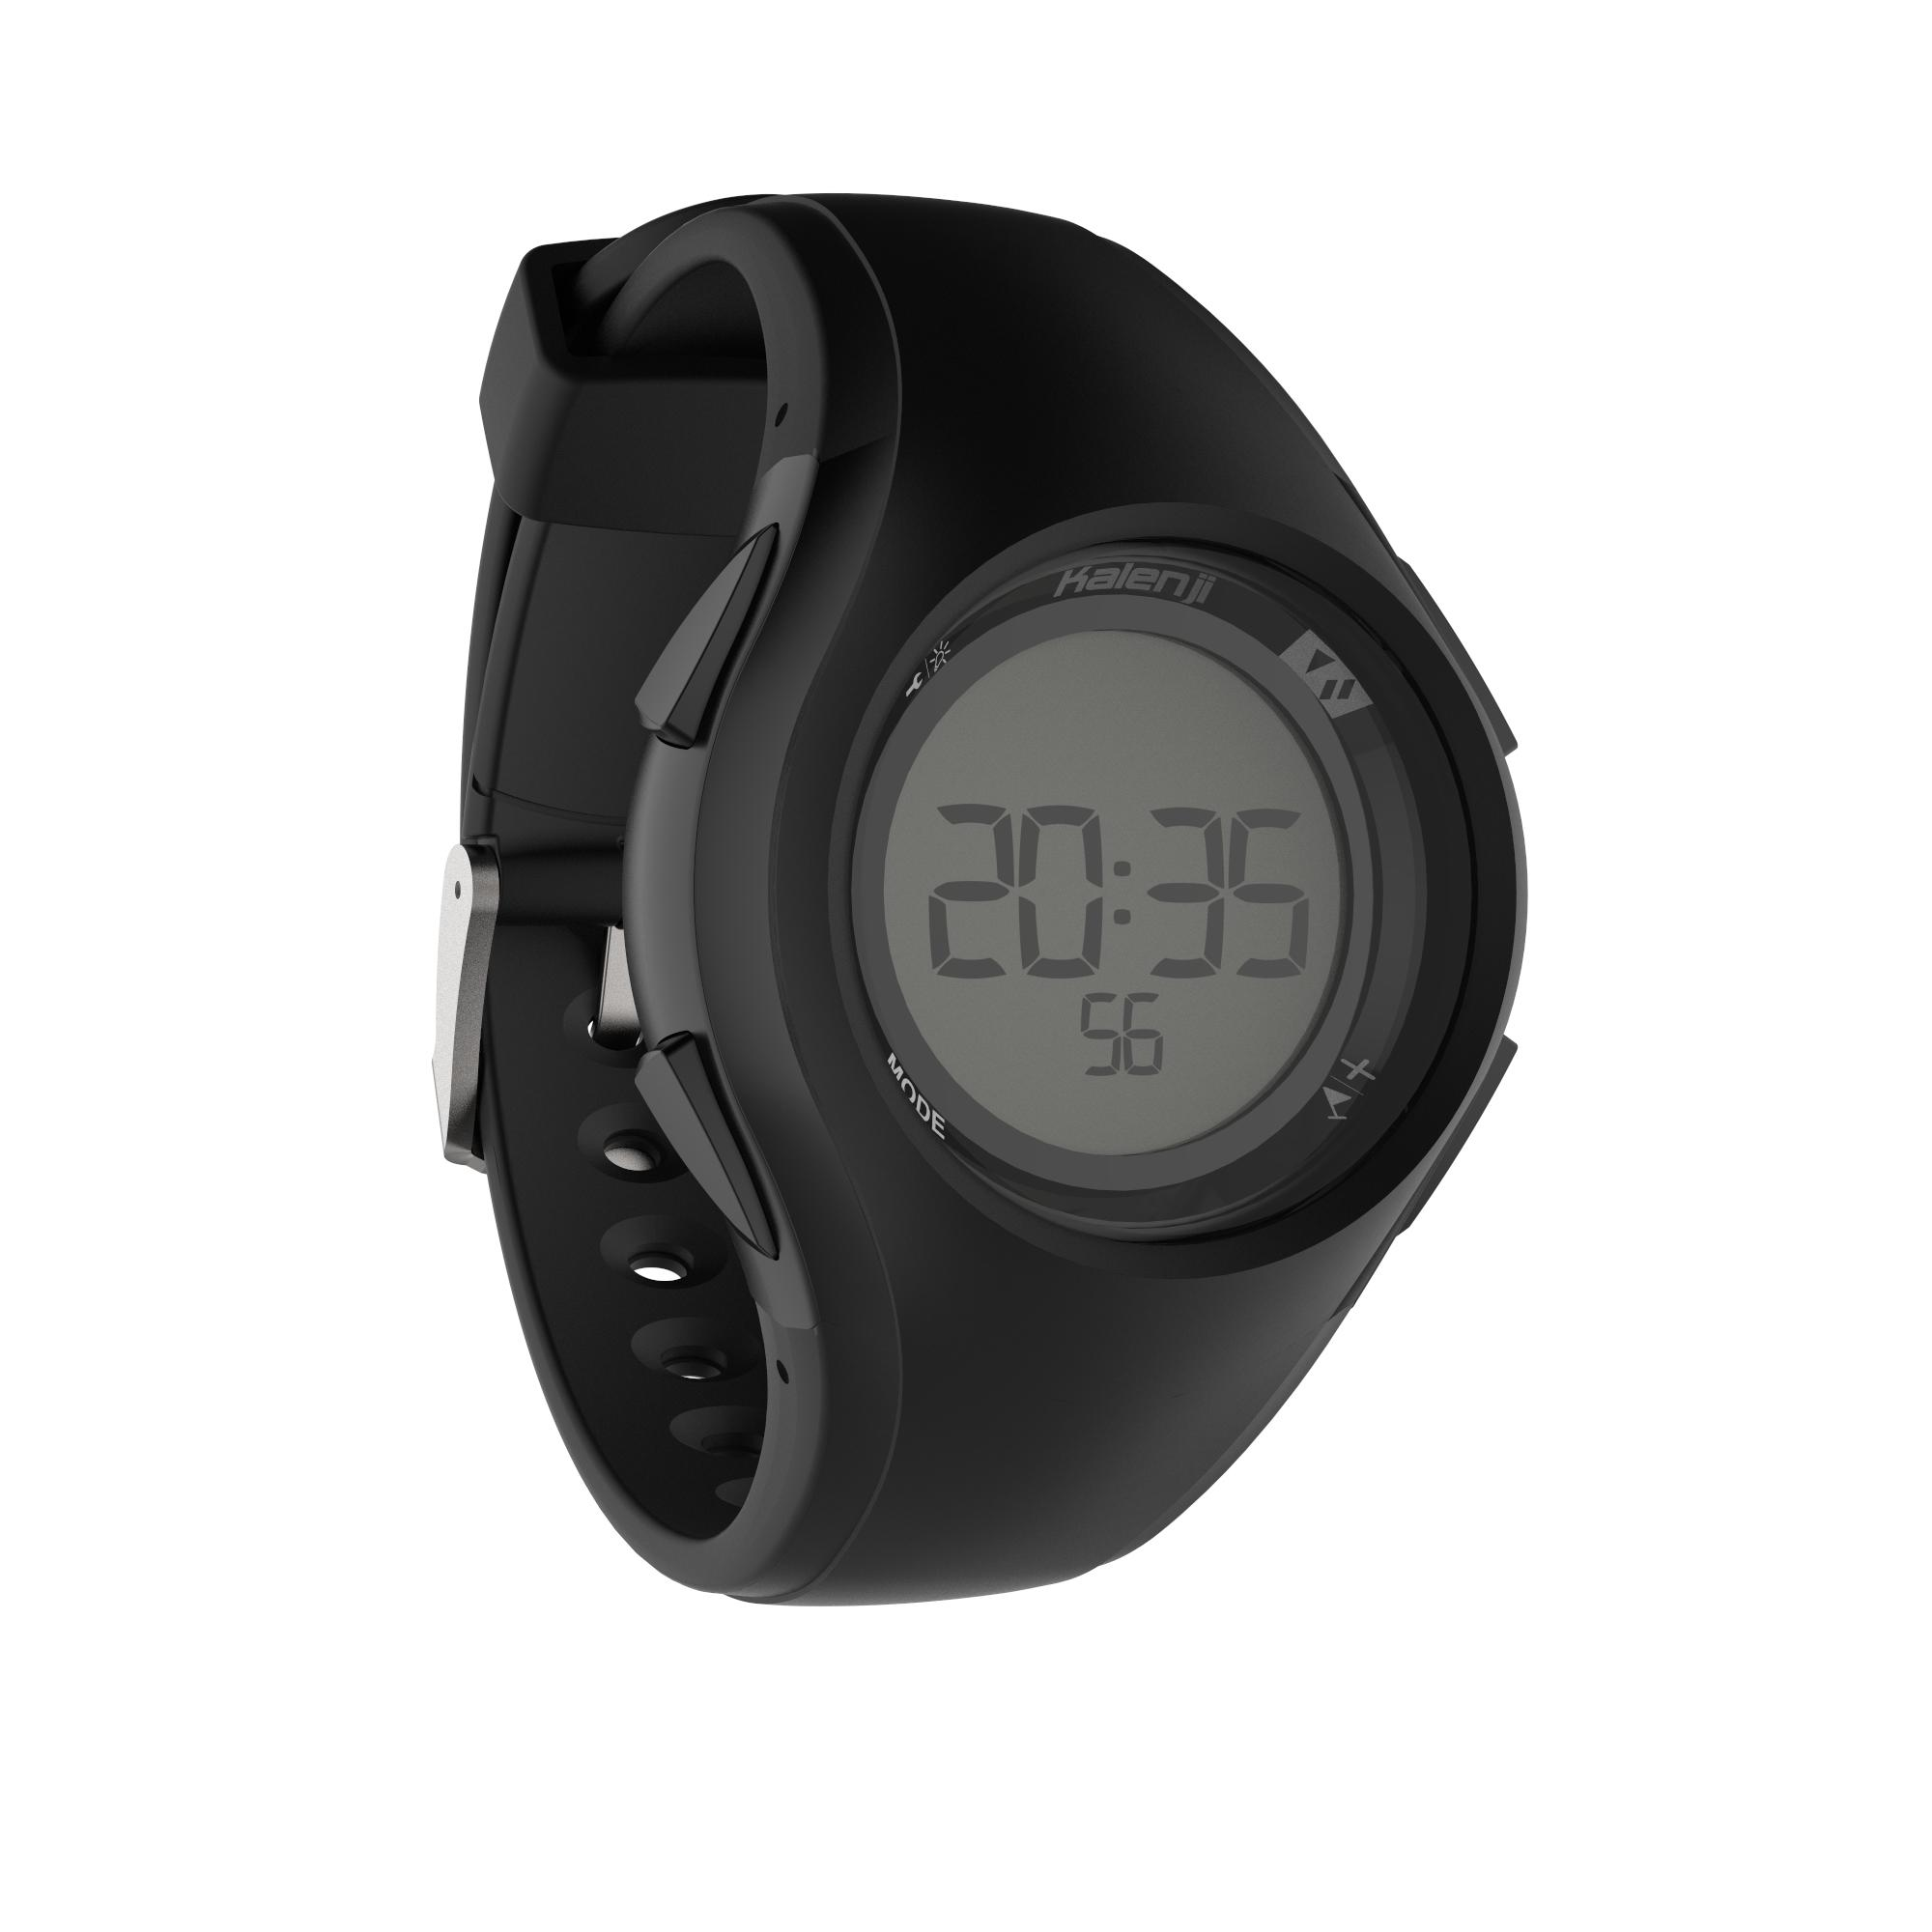 W200 M men's running stopwatch black